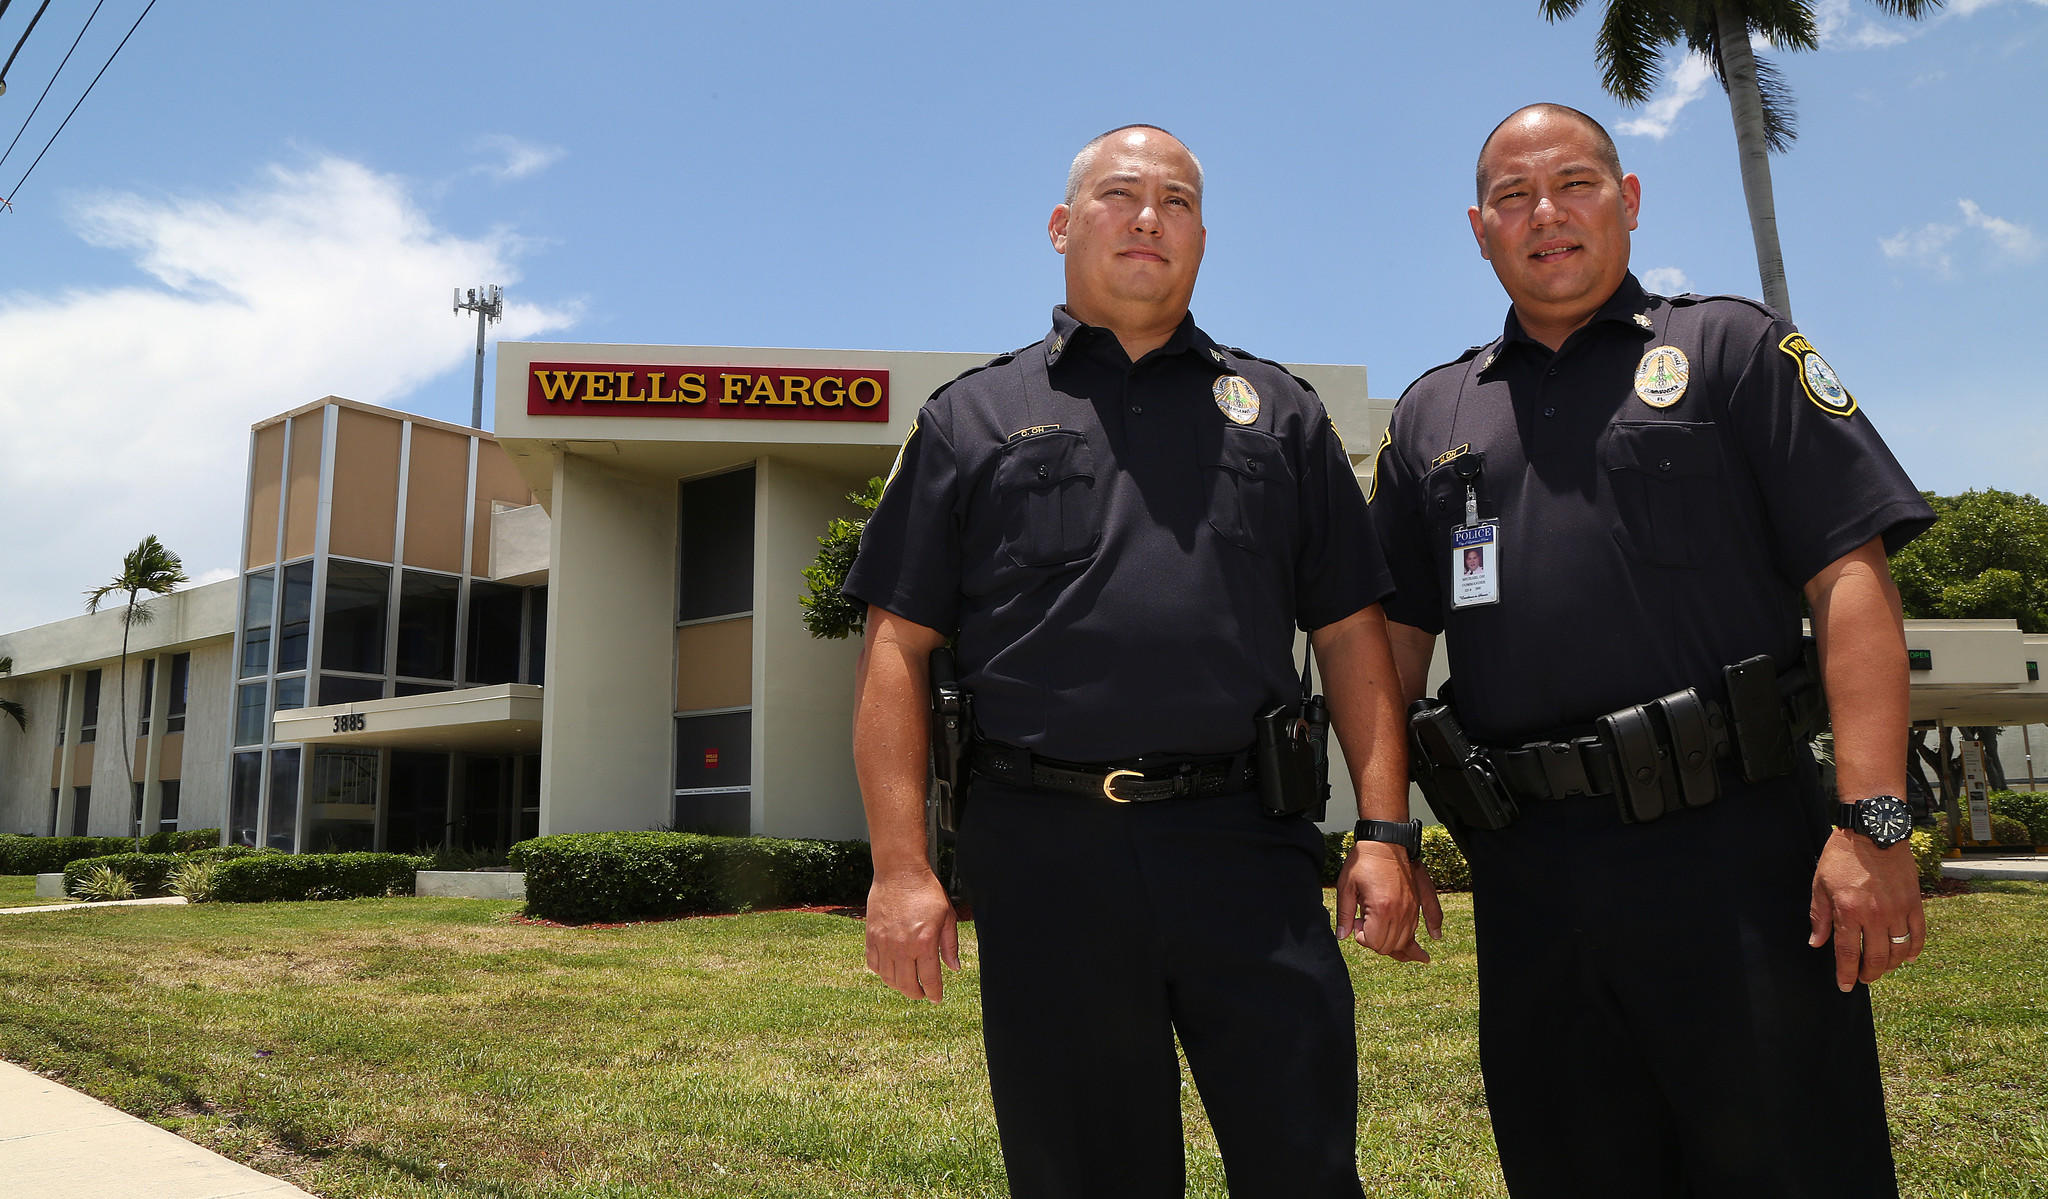 Sgt. Chris Oh and his brother, Commander Michael Oh, have each apprehended a bank robber who fled from a Wells Fargo bank branch just across Federal Highway from the city they protect.